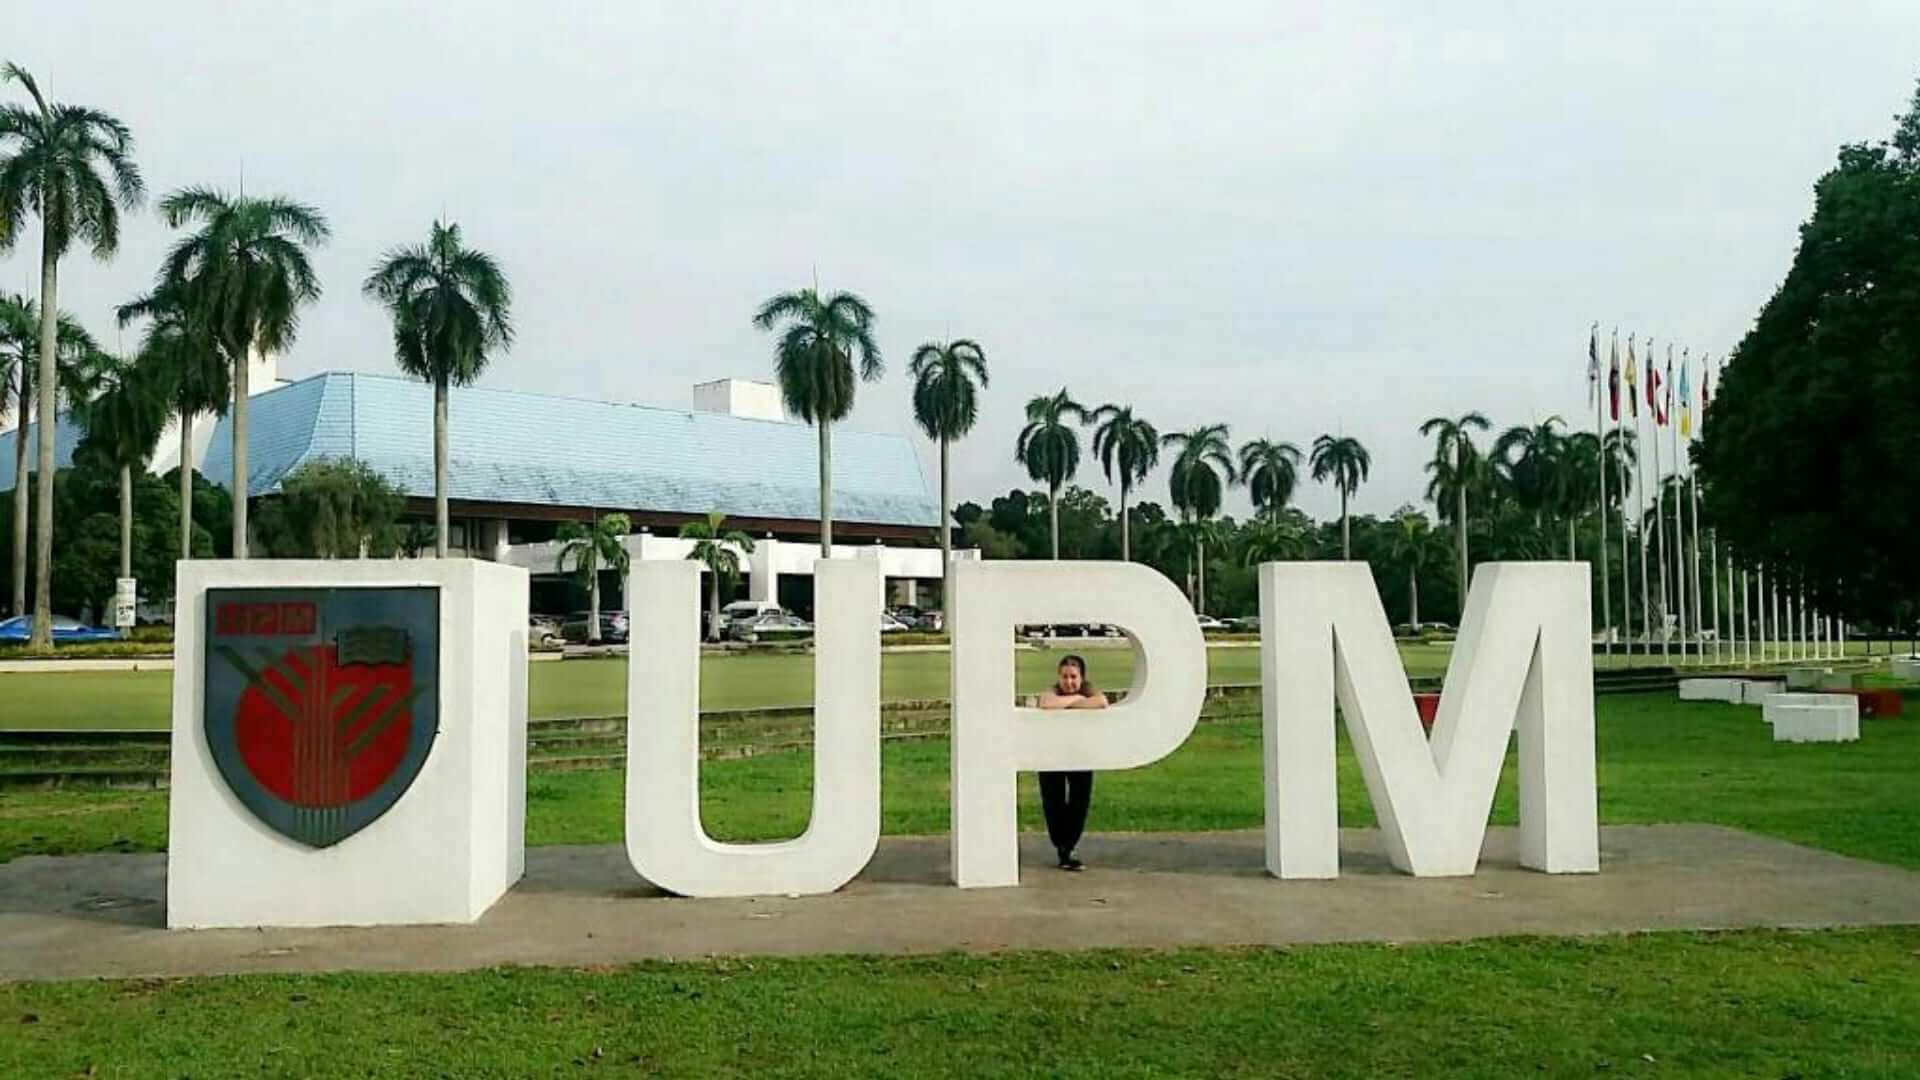 A girl is standing behind white big letters (UPM) on a lawn with palm trees in Malaysia.